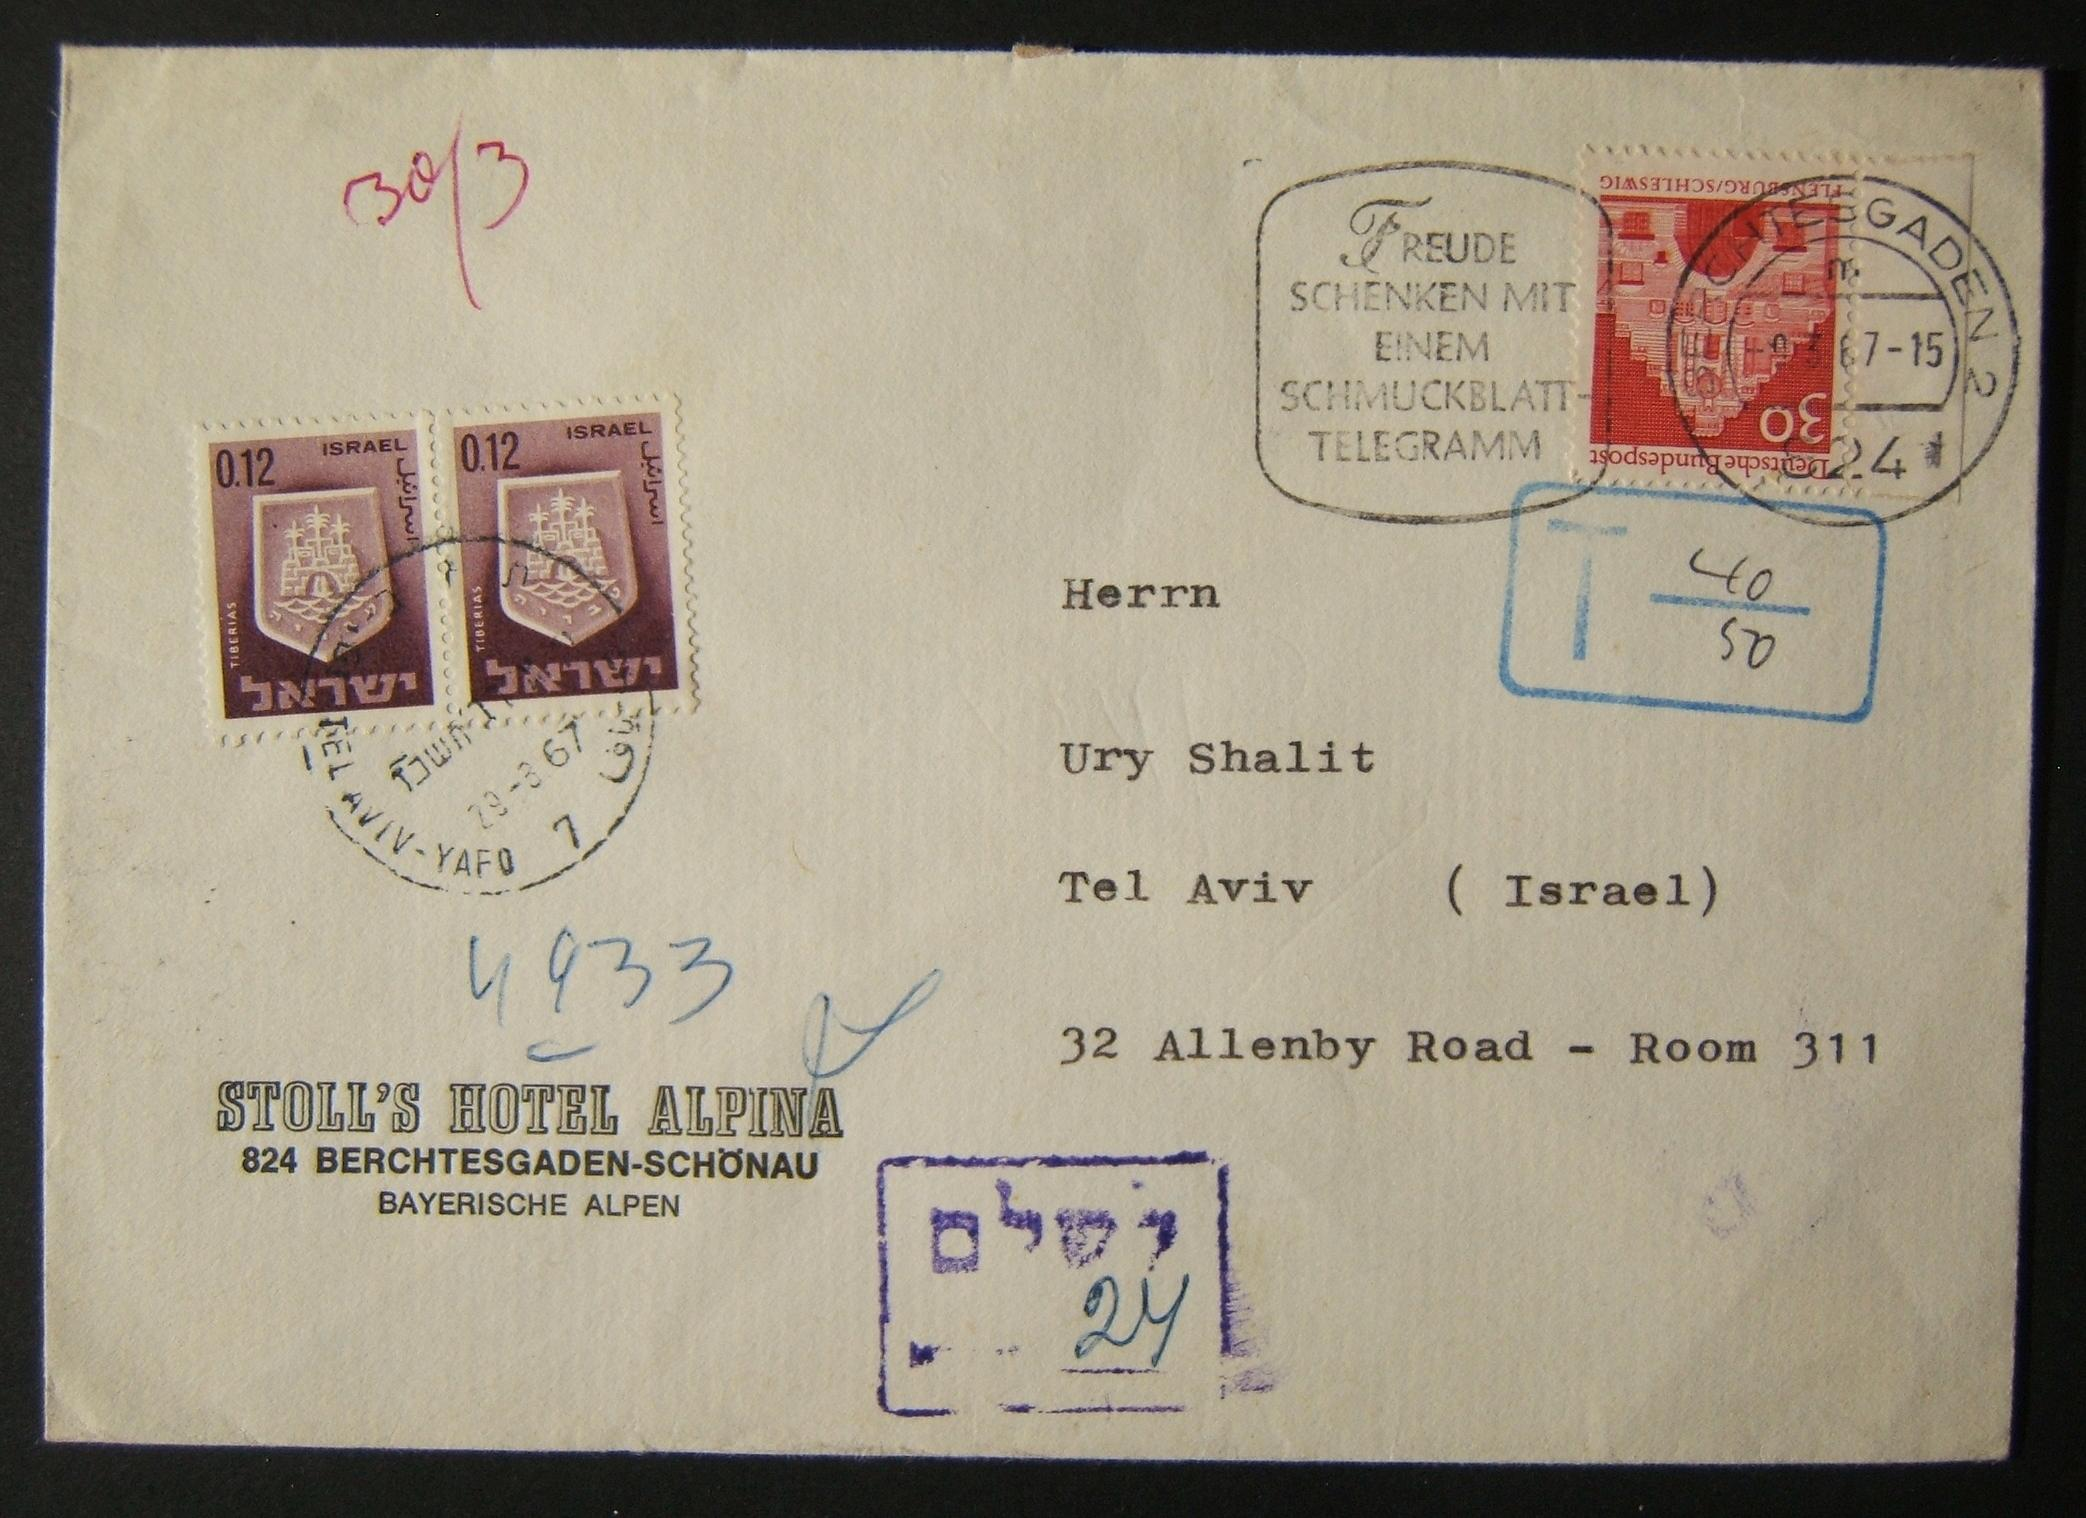 1967 incoming German taxed mail: 9-3-67 surface mailed commercial cover ex BERCHTESGADEN to TLV underfranked at 0.30DM and taxed 0.24L in Israel, paid 29-3-67 using pair 0.12L 1965